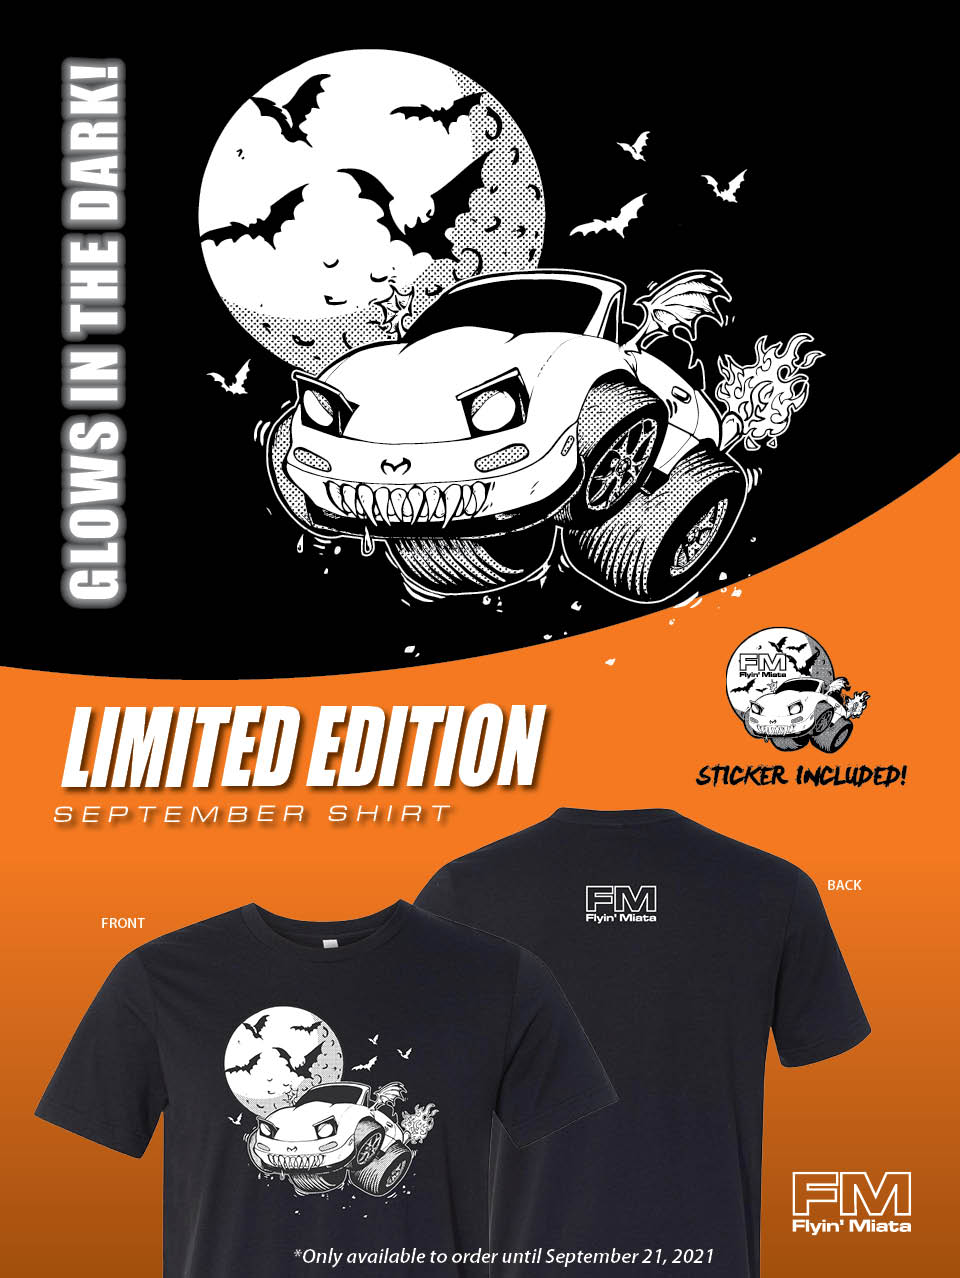 Limited Edition August Shirt